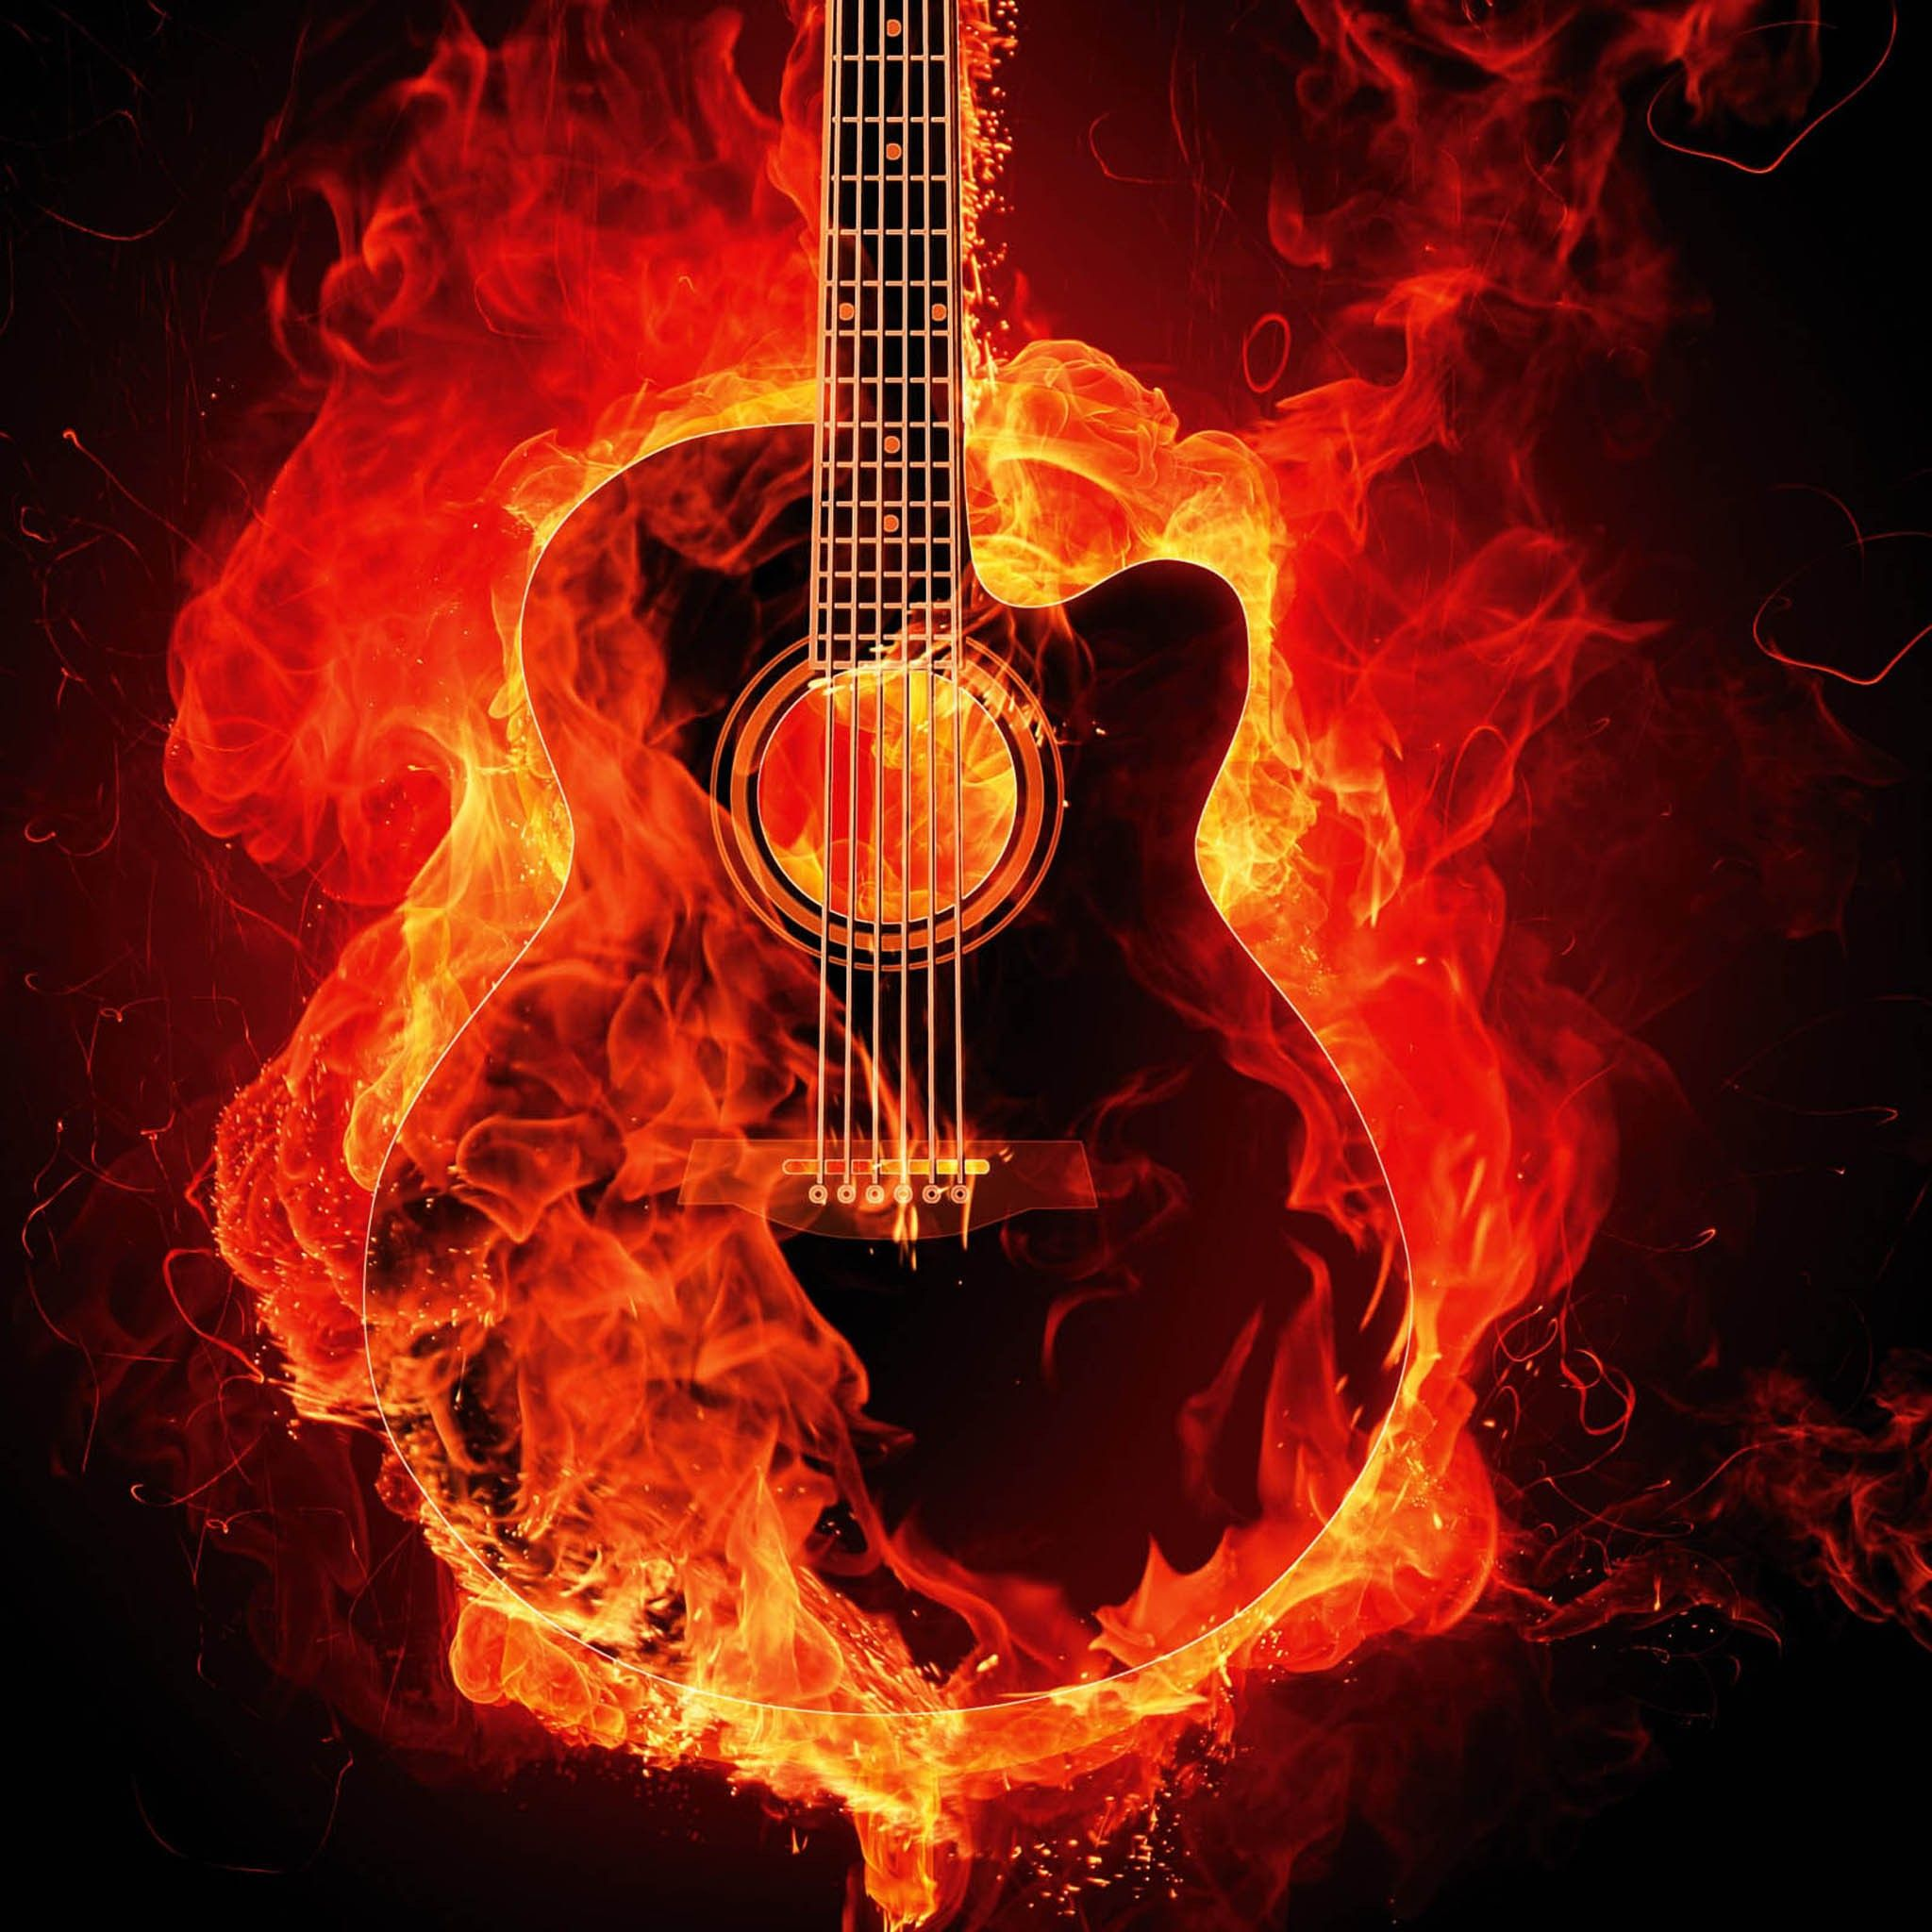 Ipad Wallpaper Guitar 2048x2048 Ipad Wallpapers And Backgrounds